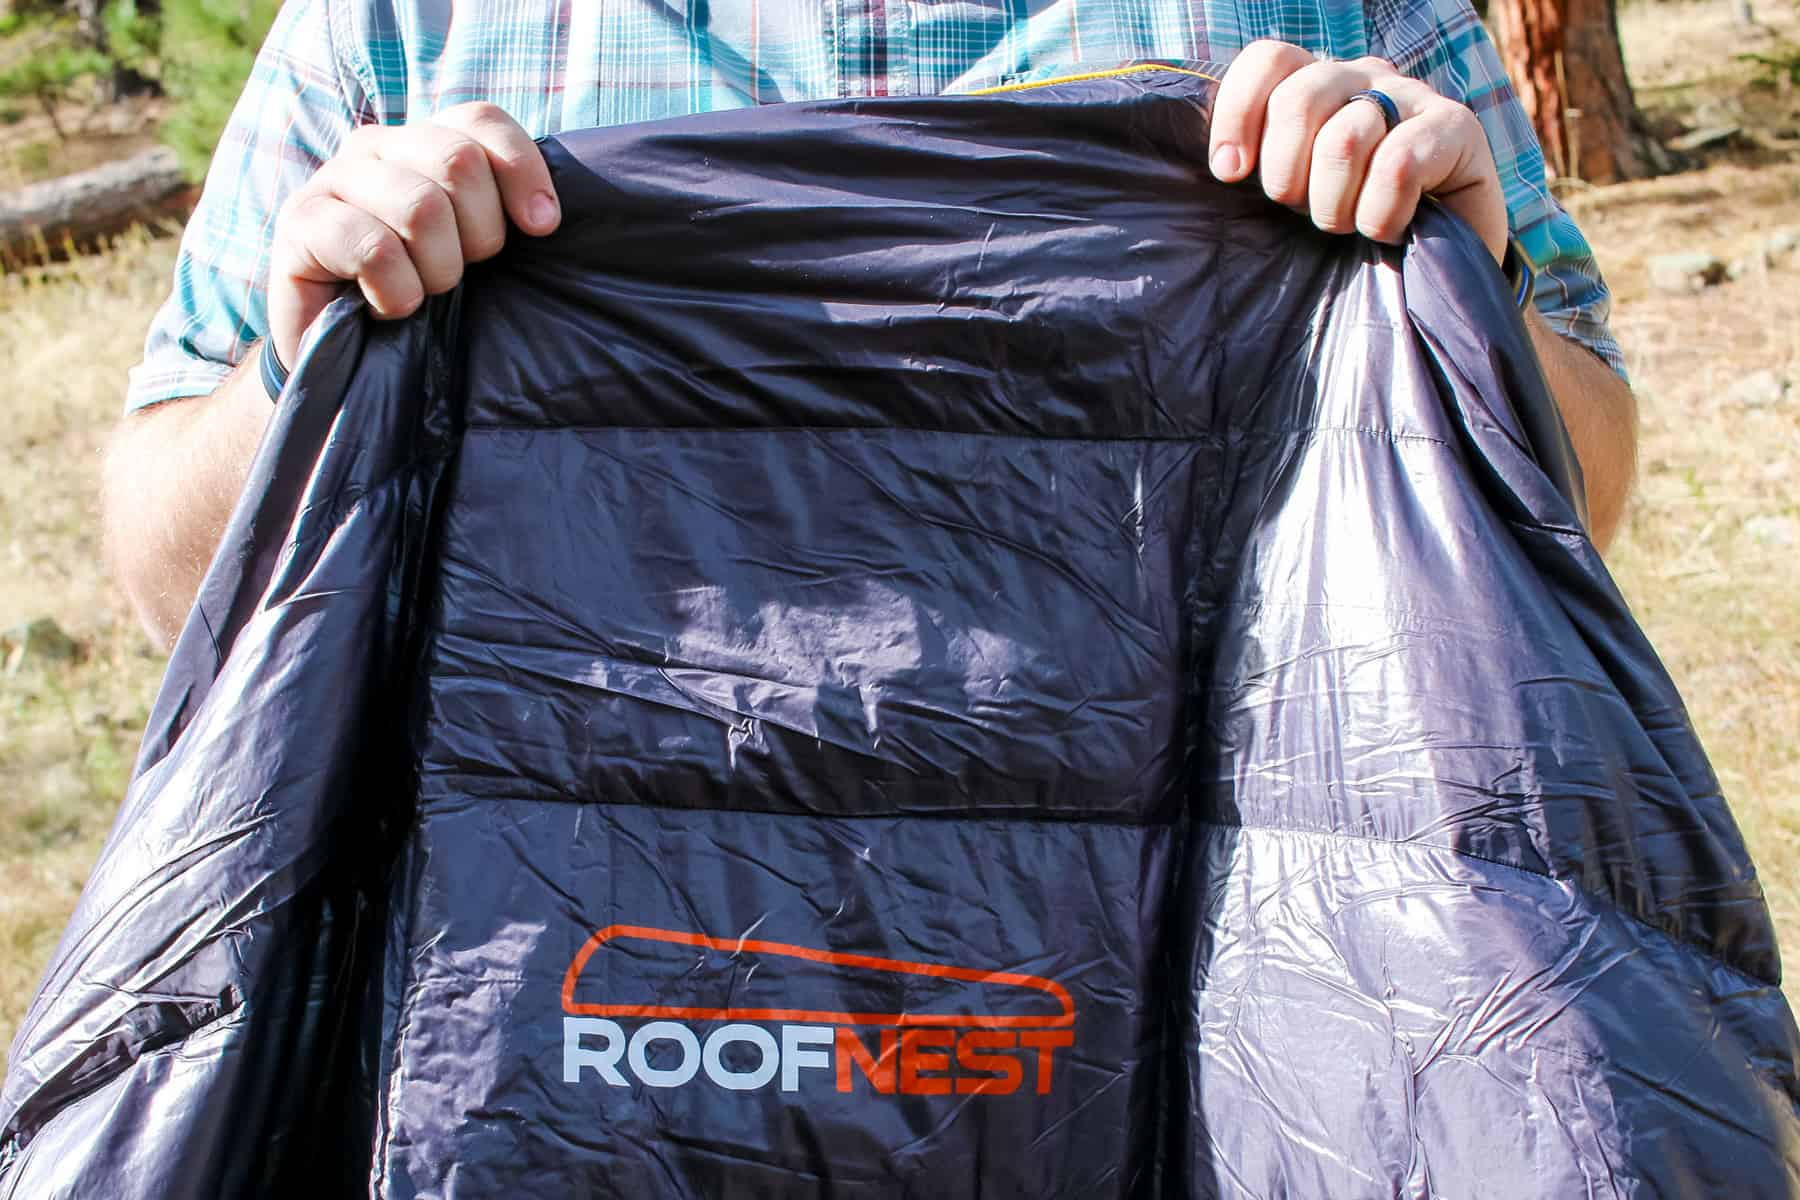 roofnest daily mom parent portal holiday guide 2018 Family gift ideas